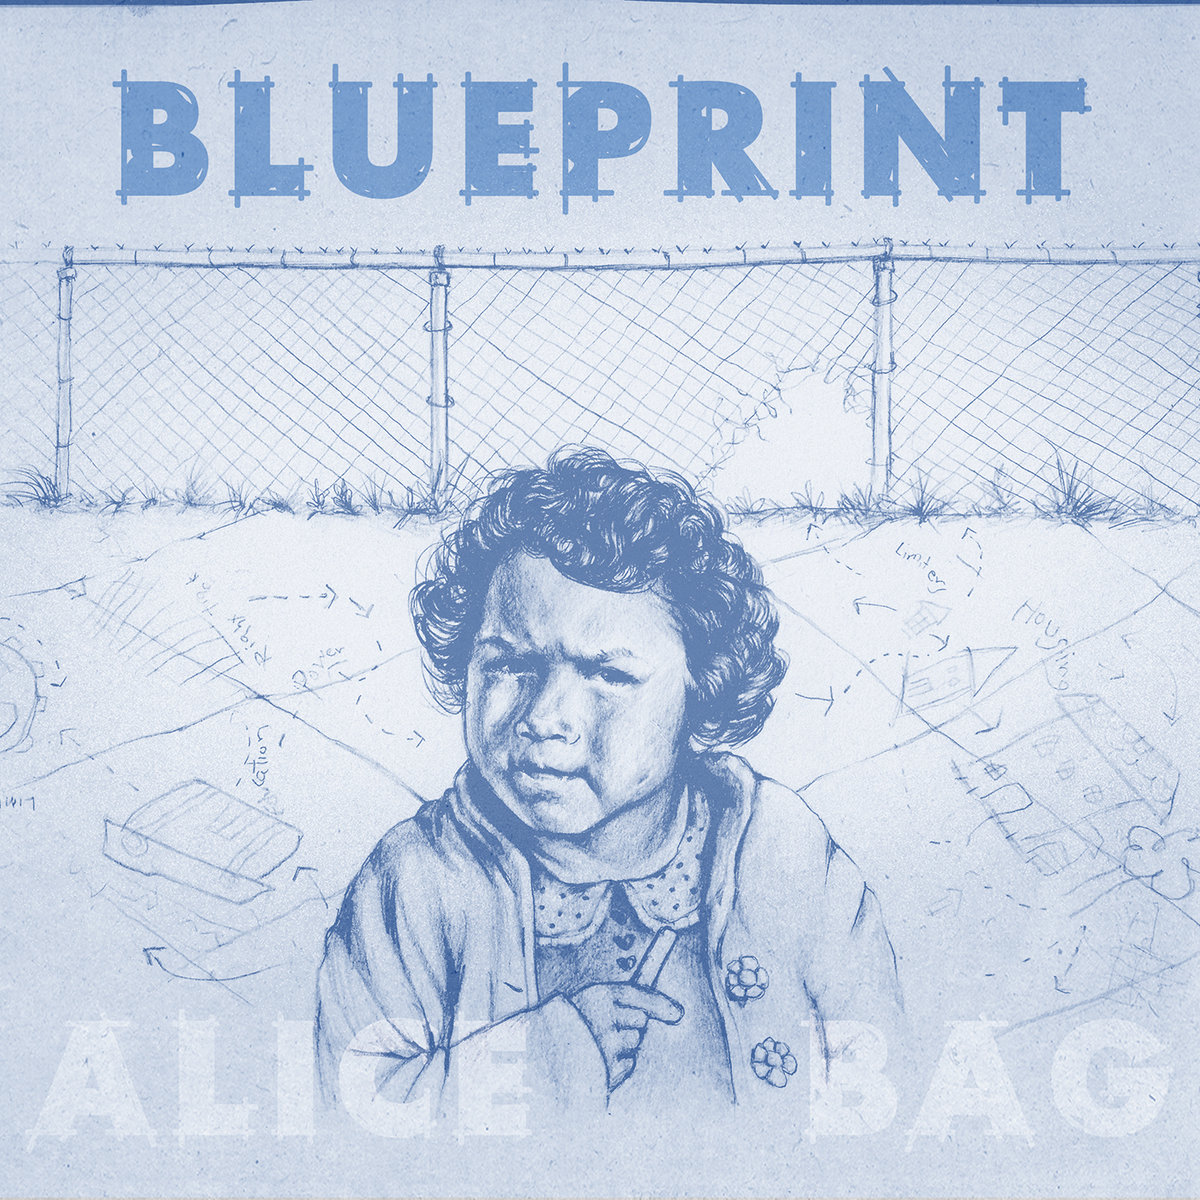 Blueprint alice bag blueprint malvernweather Choice Image